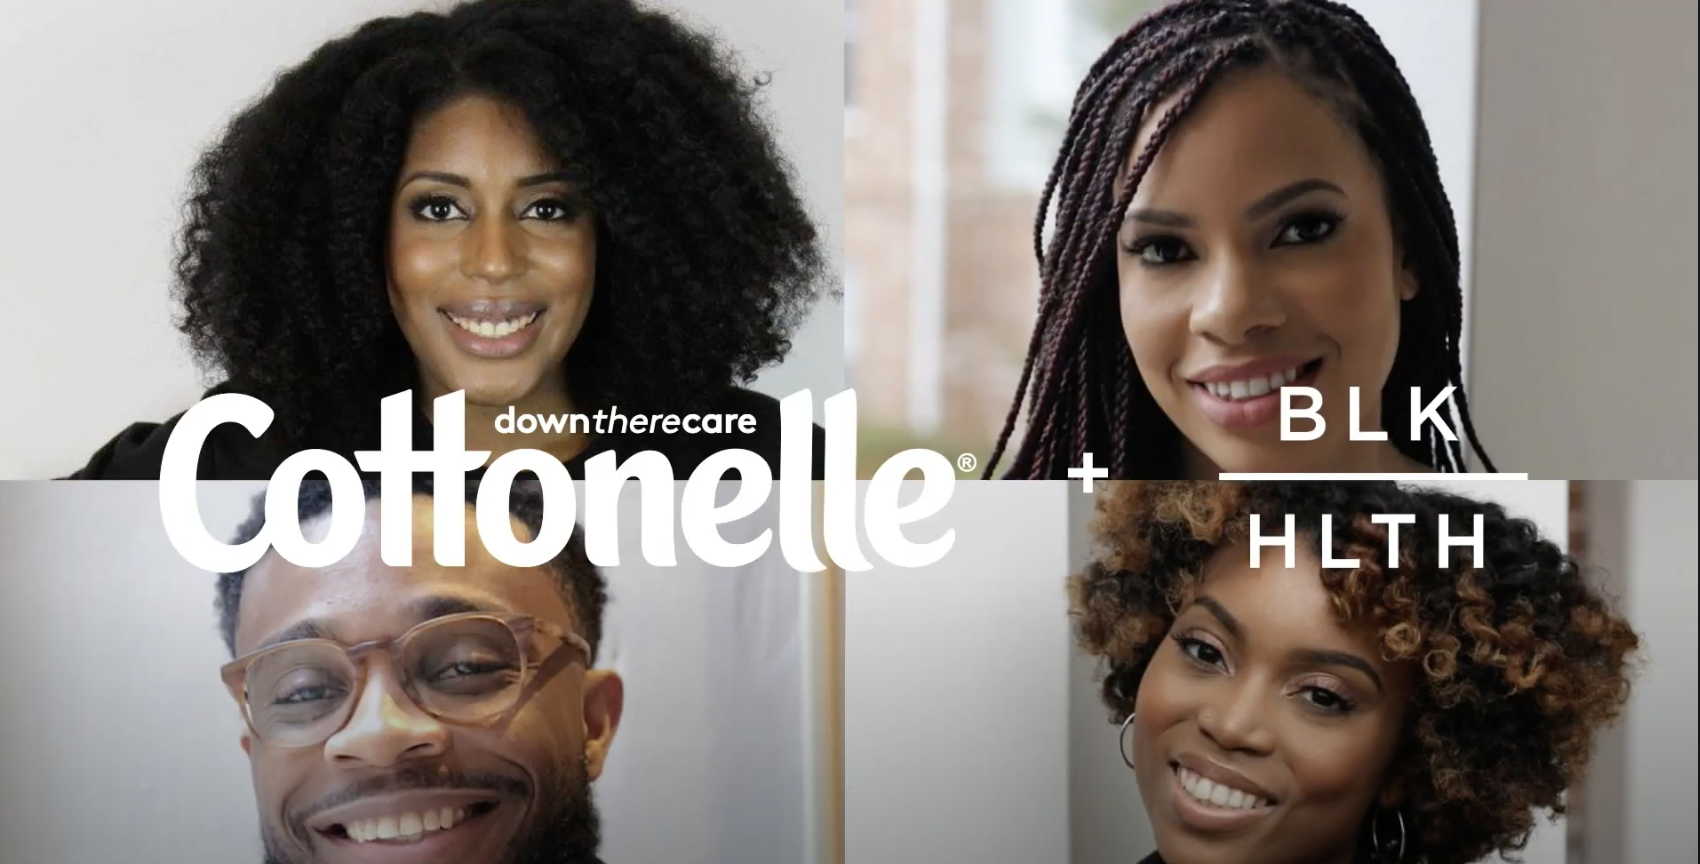 Cottonelle Teams Up With BLKHLTH To Fight Colon Cancer & Racial Disparities